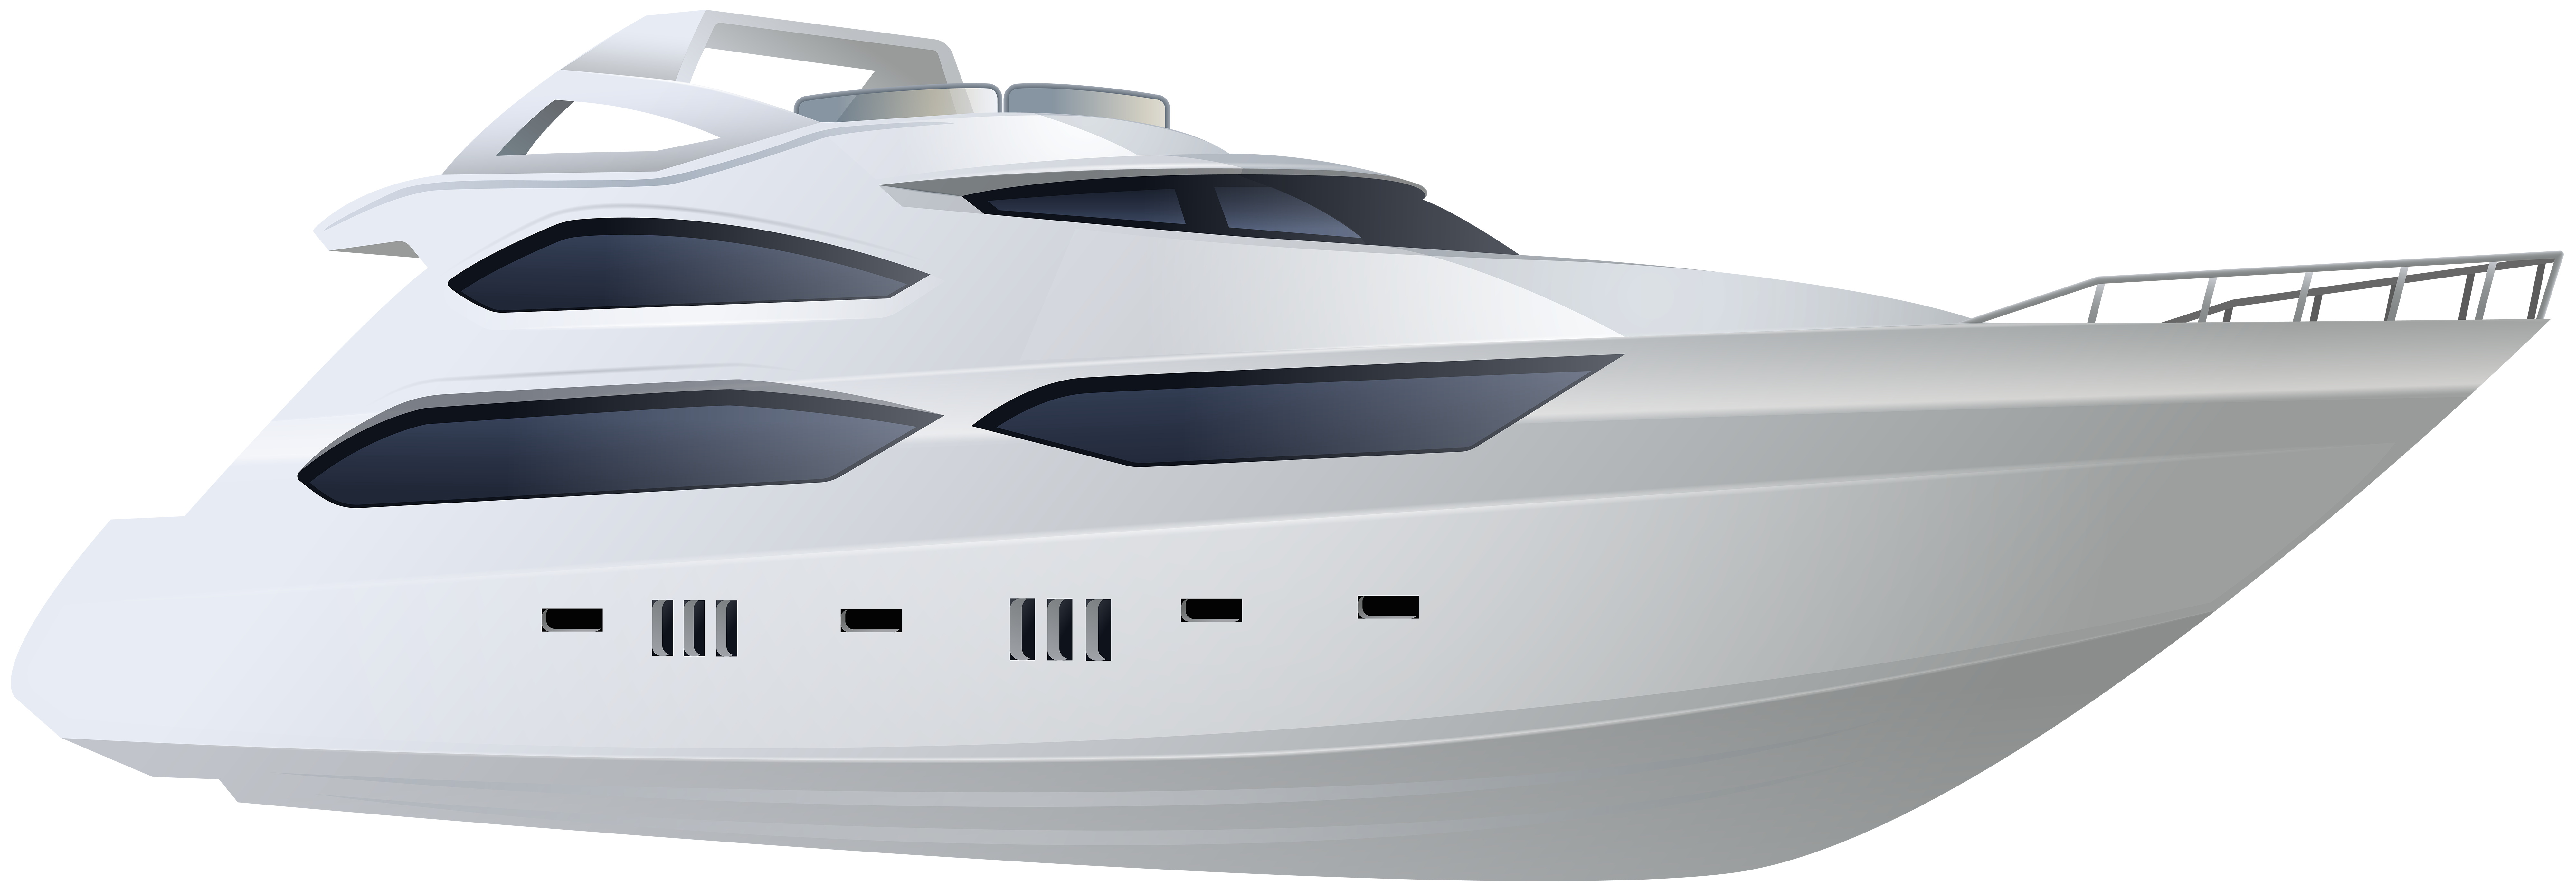 Yacht png. Clip art image gallery